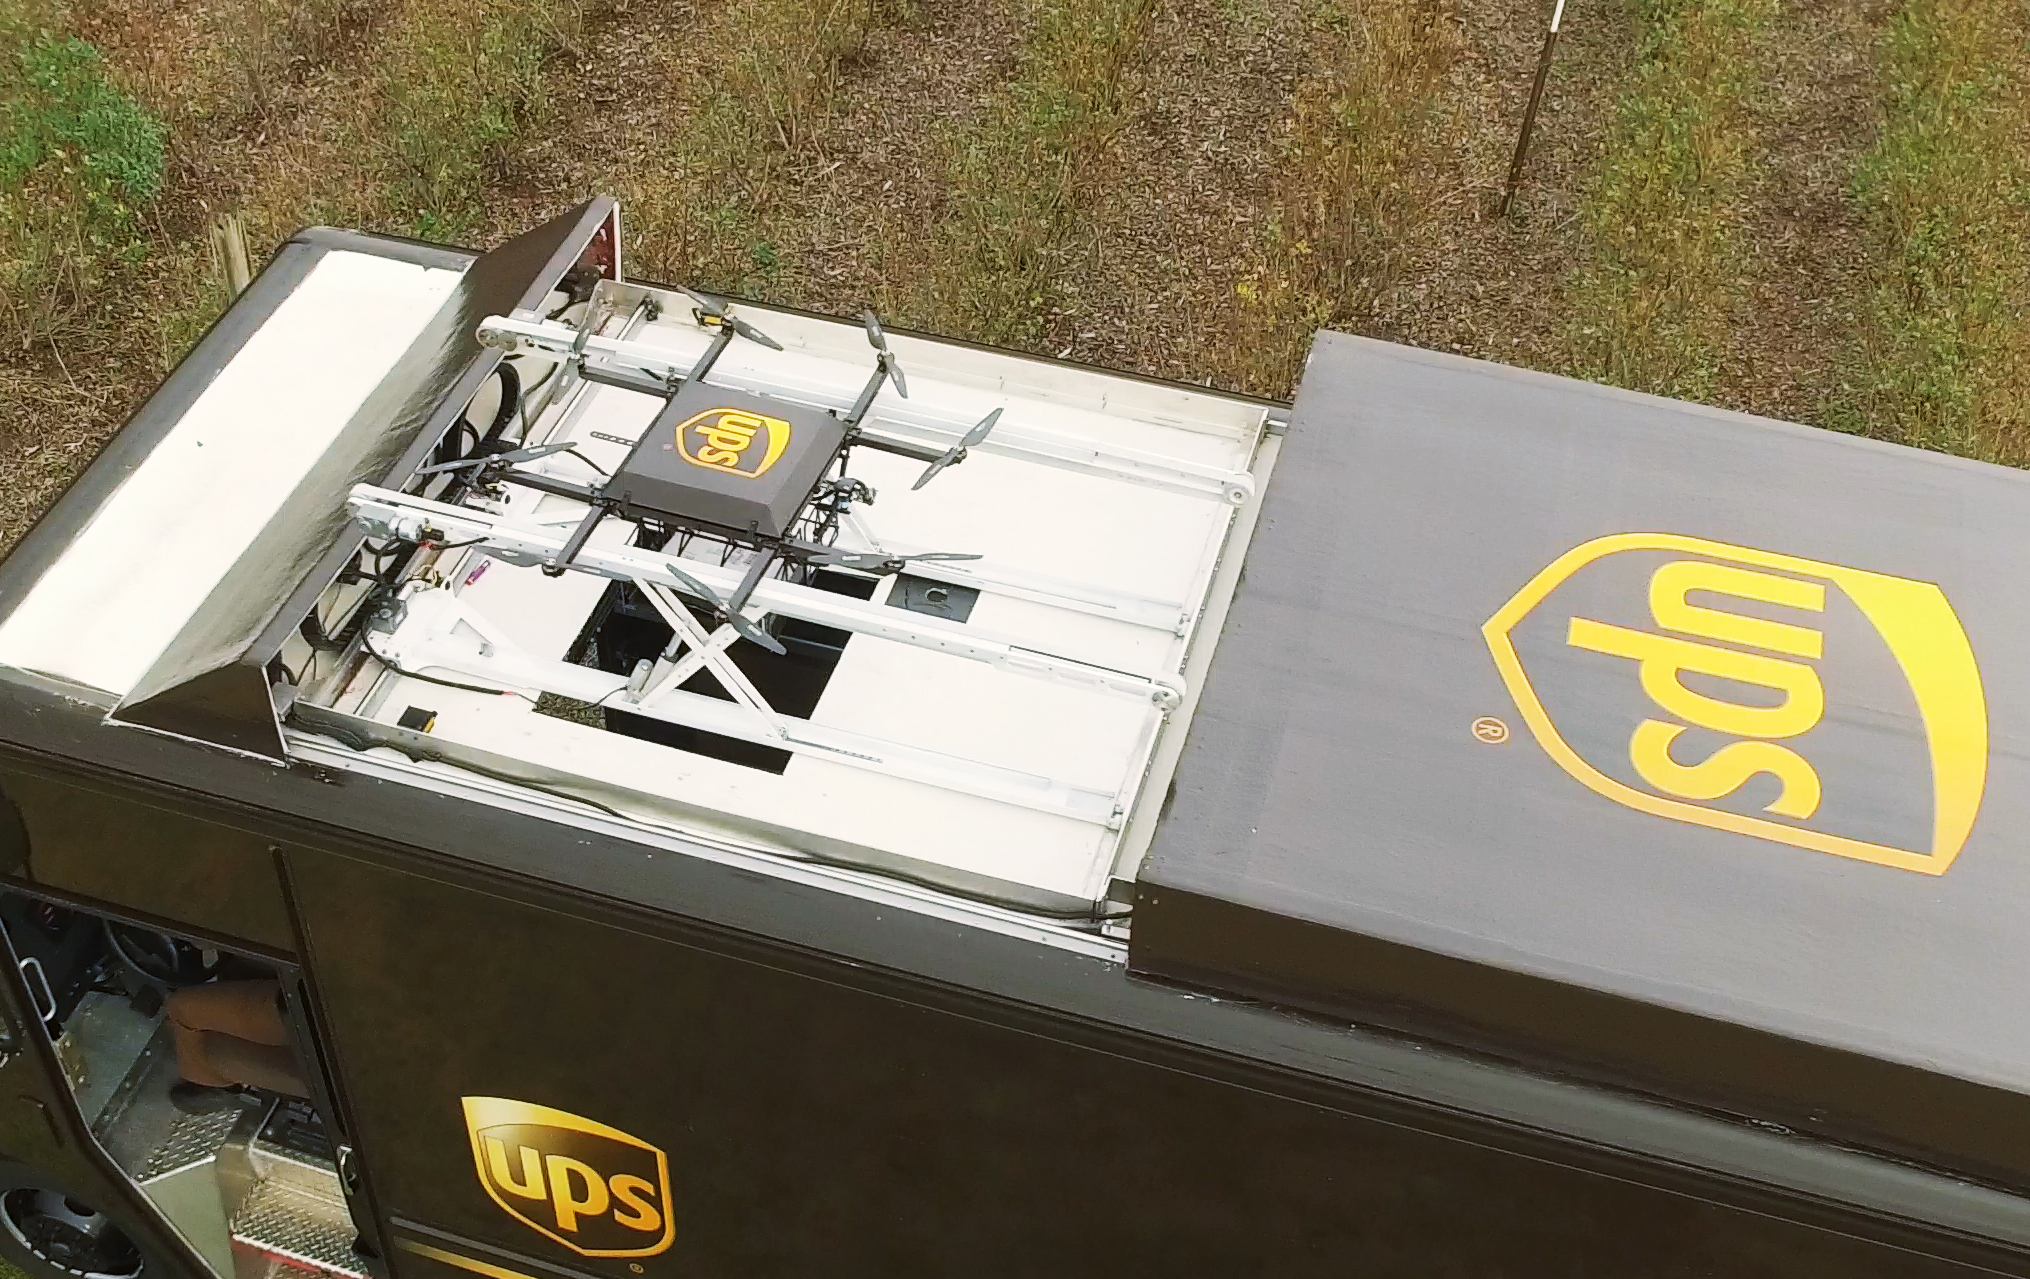 Why UPS Is Serious About Drone Deliveries But You Shouldnt Expect One Soon